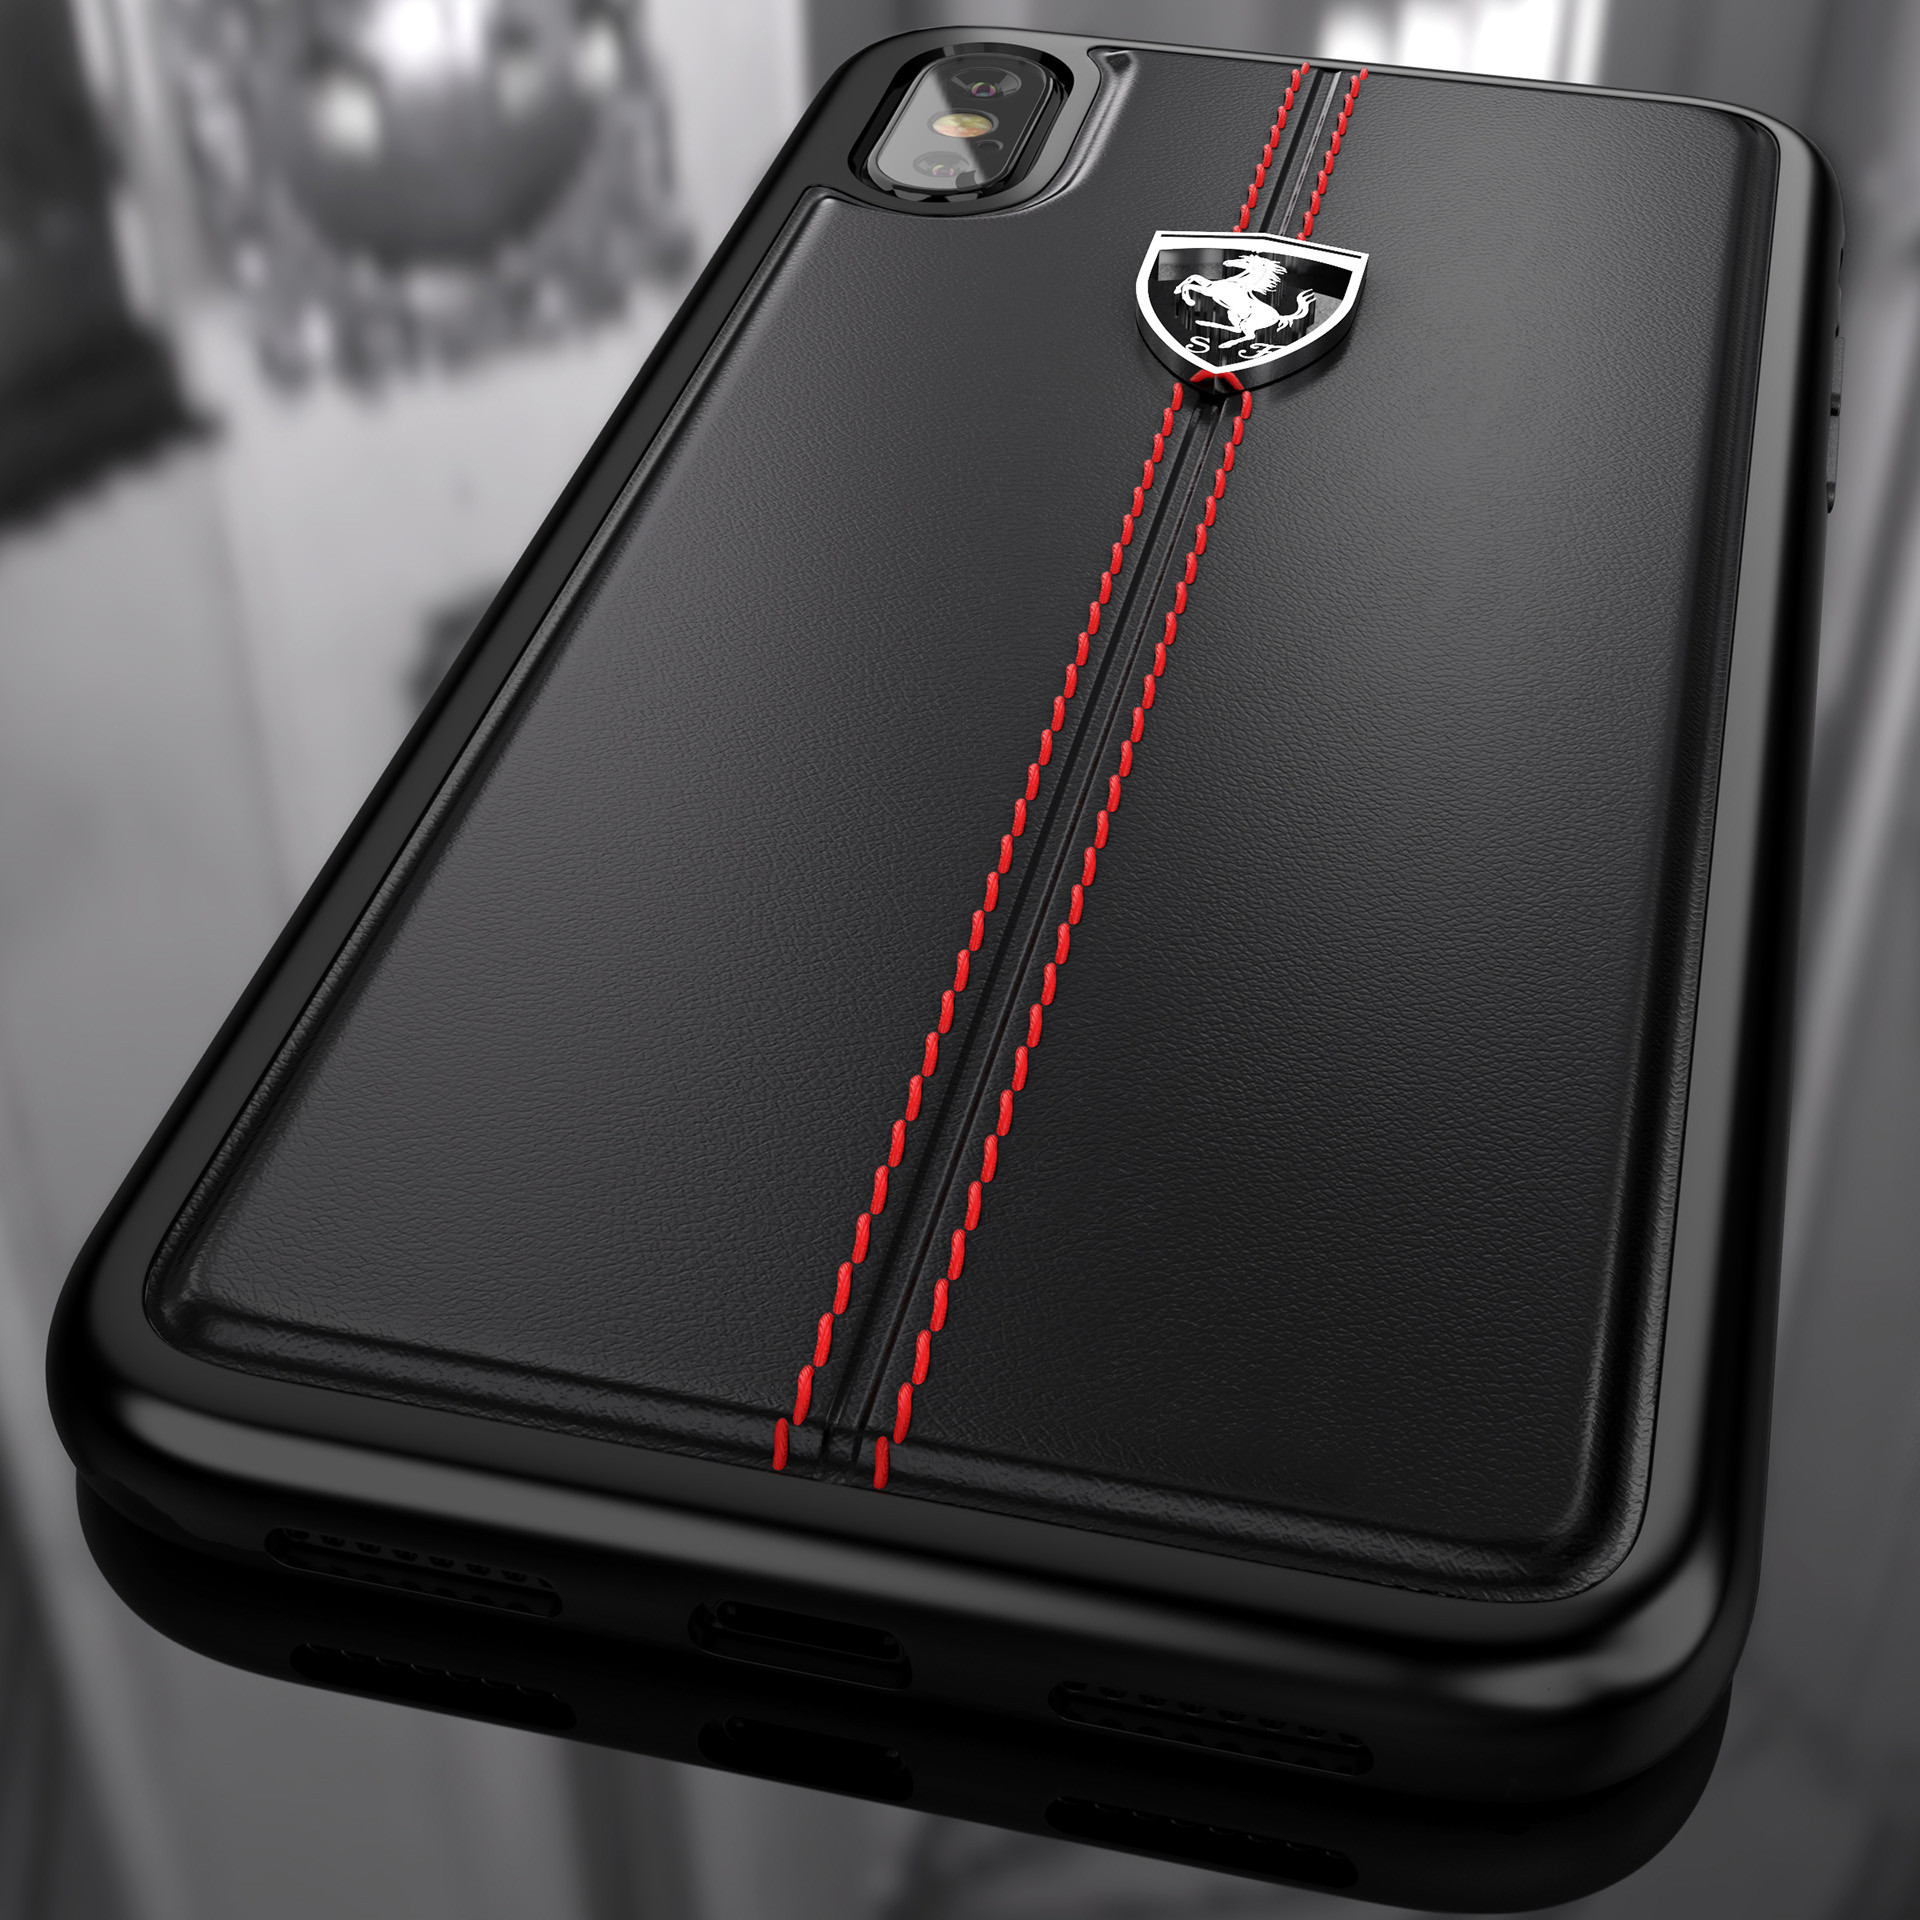 baaa01f0aad Ferrari ® Apple iPhone X Vertical Contrasted Stripe - Material Heritage  leather Hard Case back cover